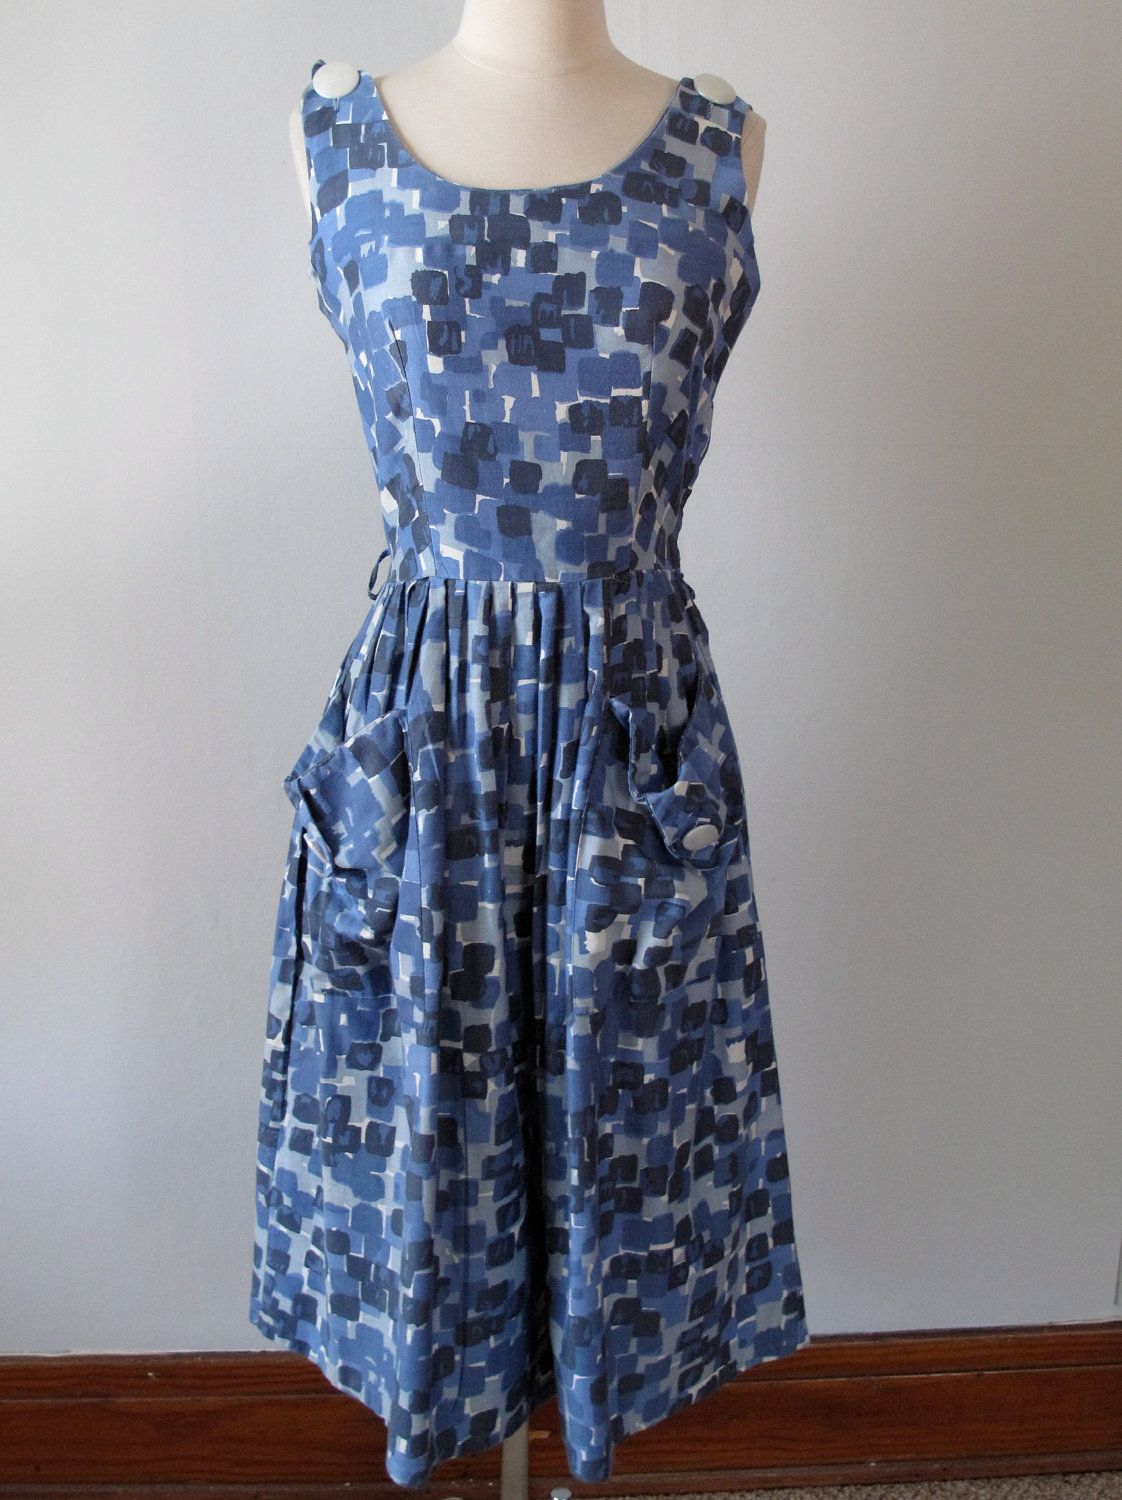 1950s Dress - Abstract Blue Squares - Cotton